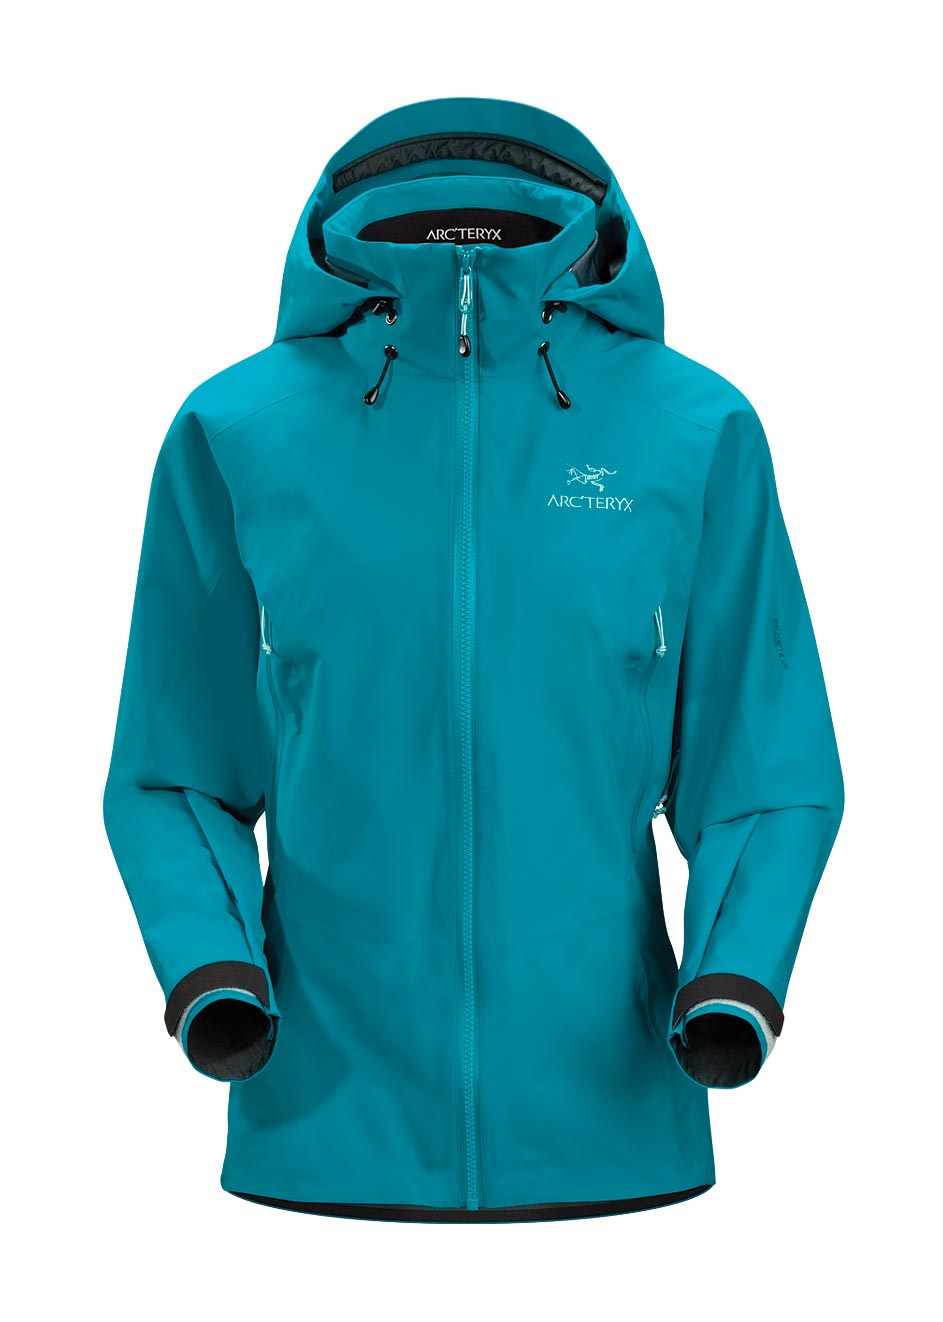 Arcteryx Jackets Women Bondi Blue Beta AR Jacket